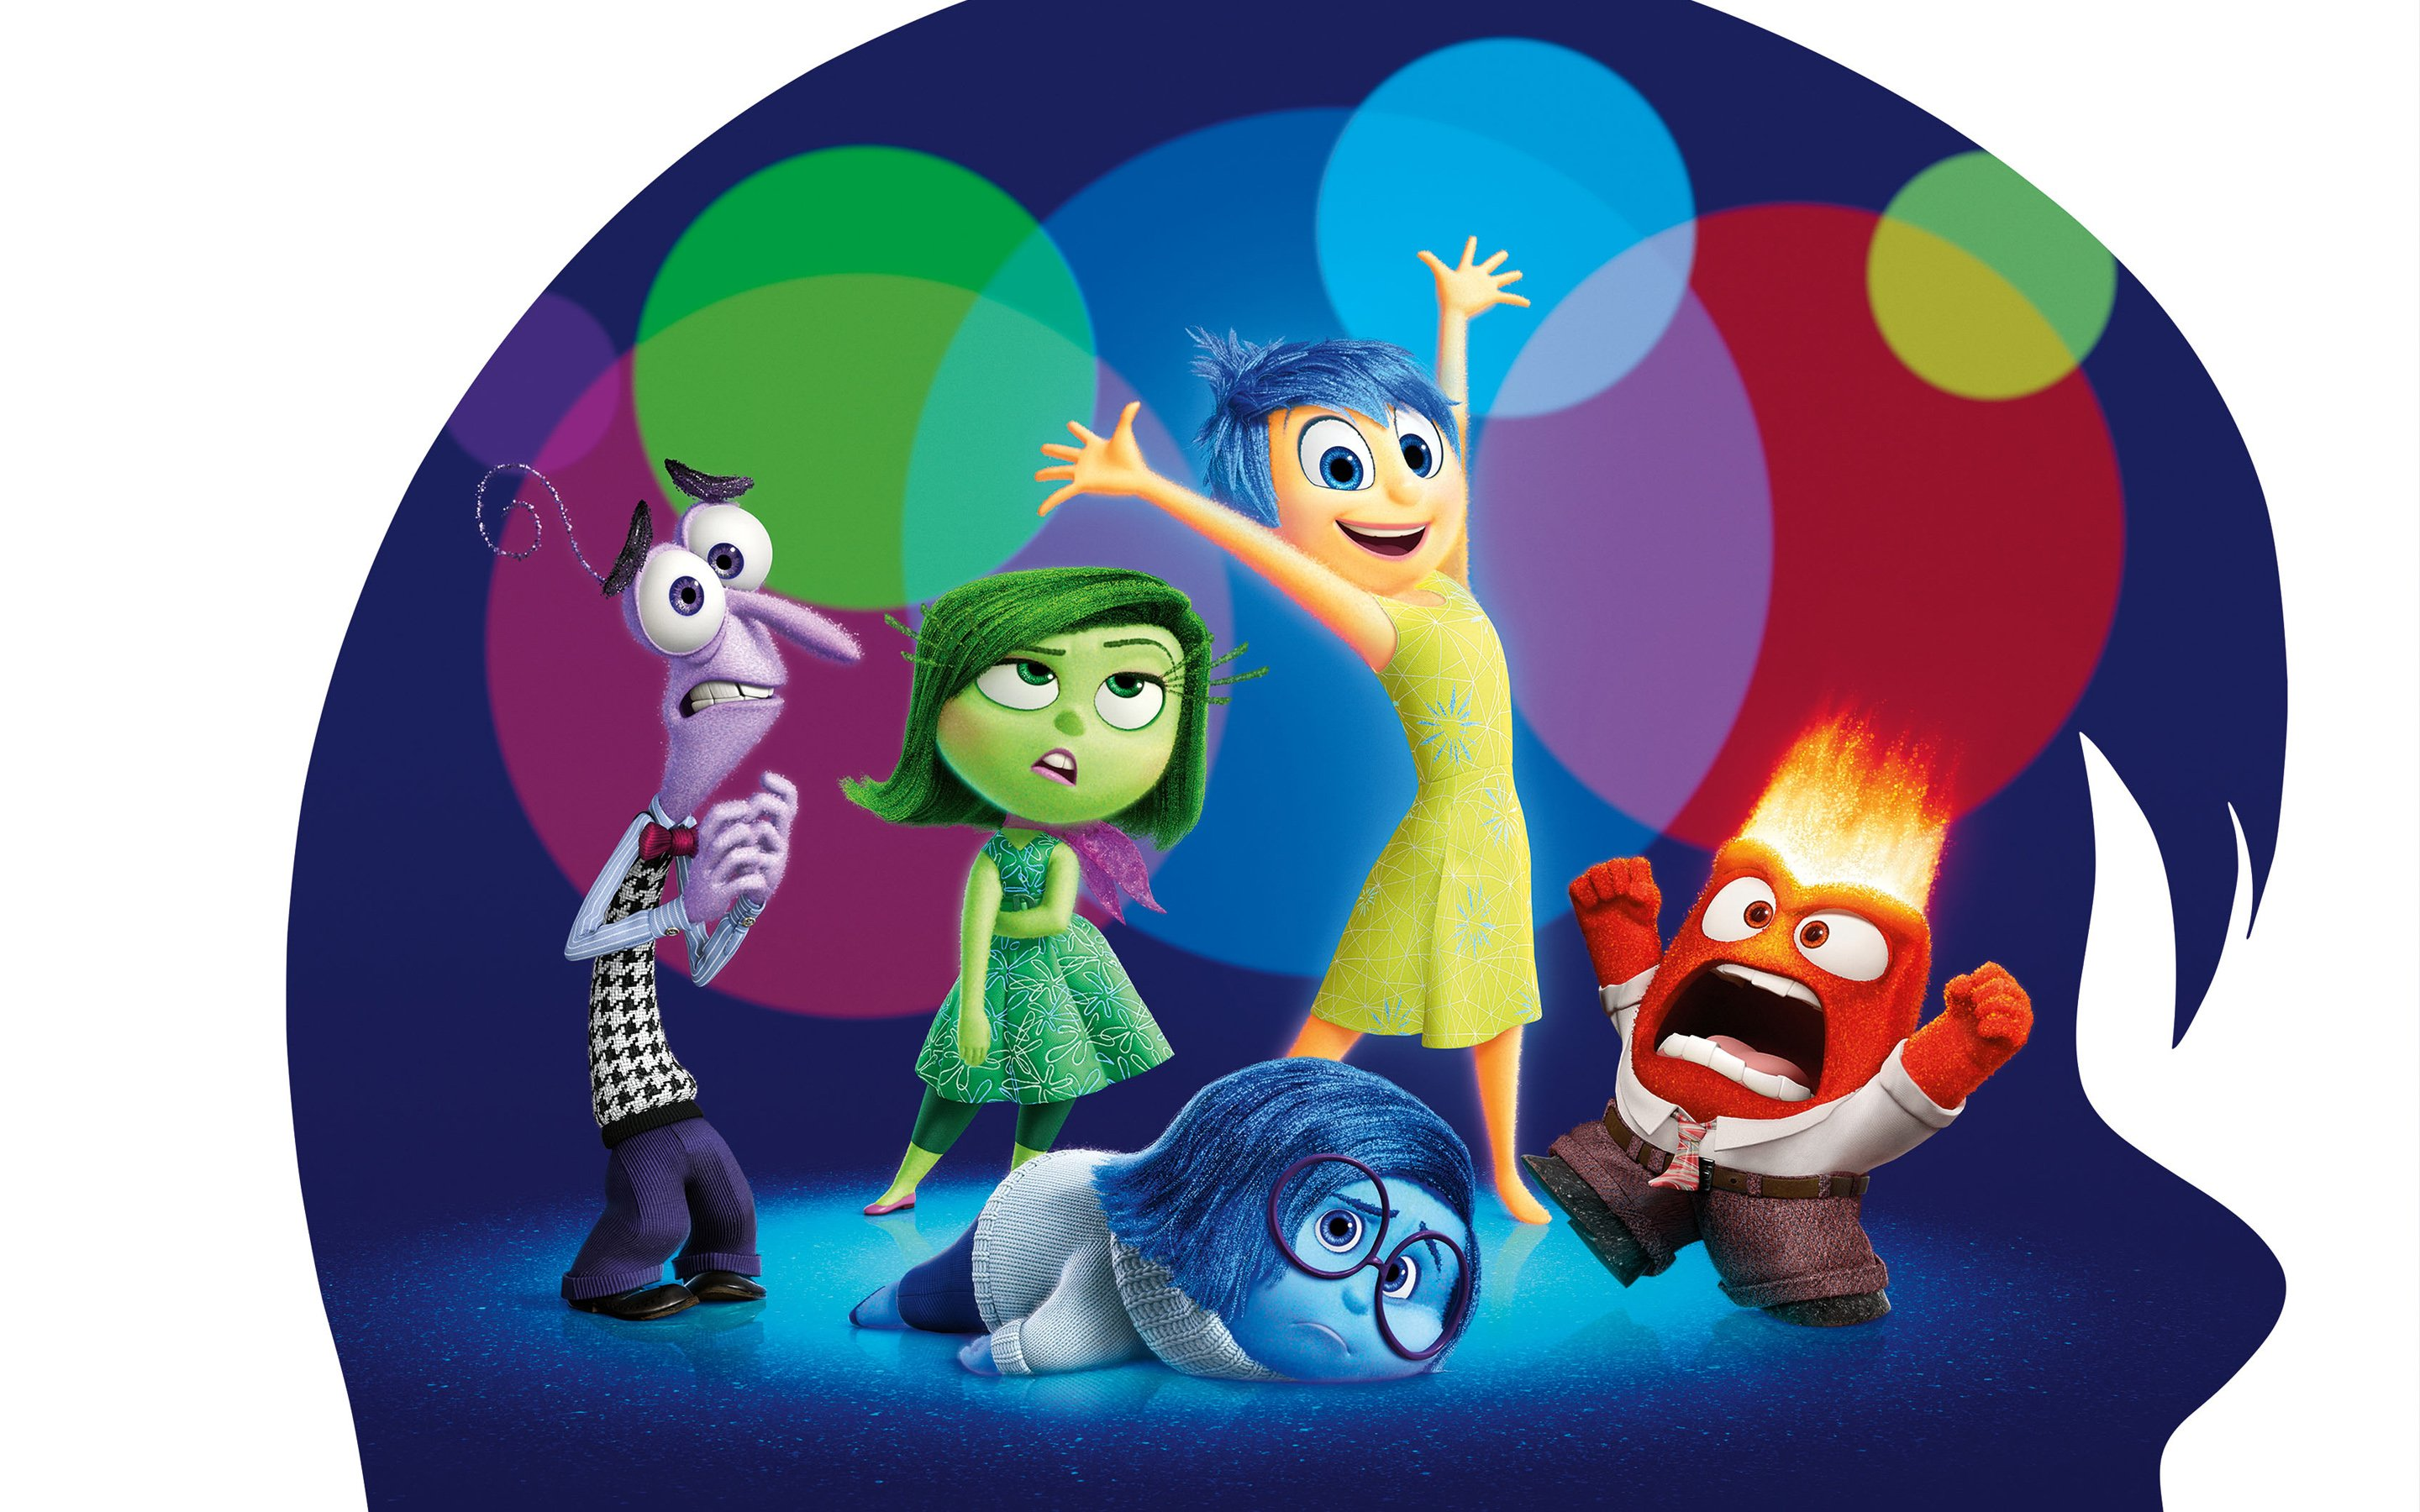 INSIDE OUT disney animation humor funny comedy family 1inside movie poster